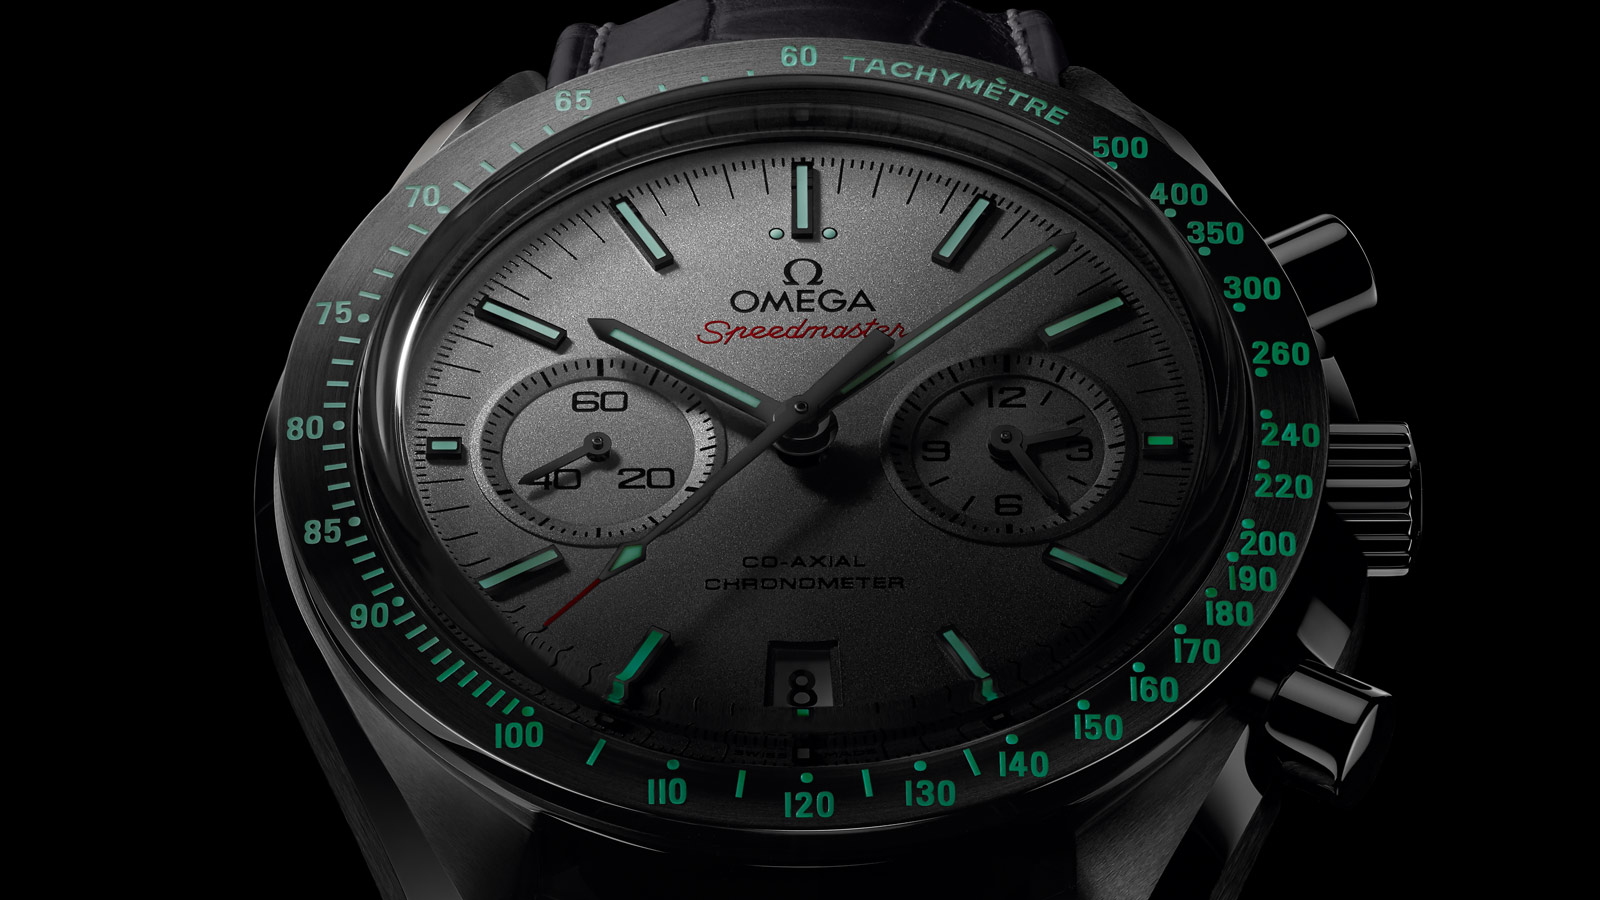 Speedmaster ムーンウォッチ Moonwatch Omega Co‑Axial Chronograph 44.25 mm - 311.93.44.51.99.001 - ビュー 2